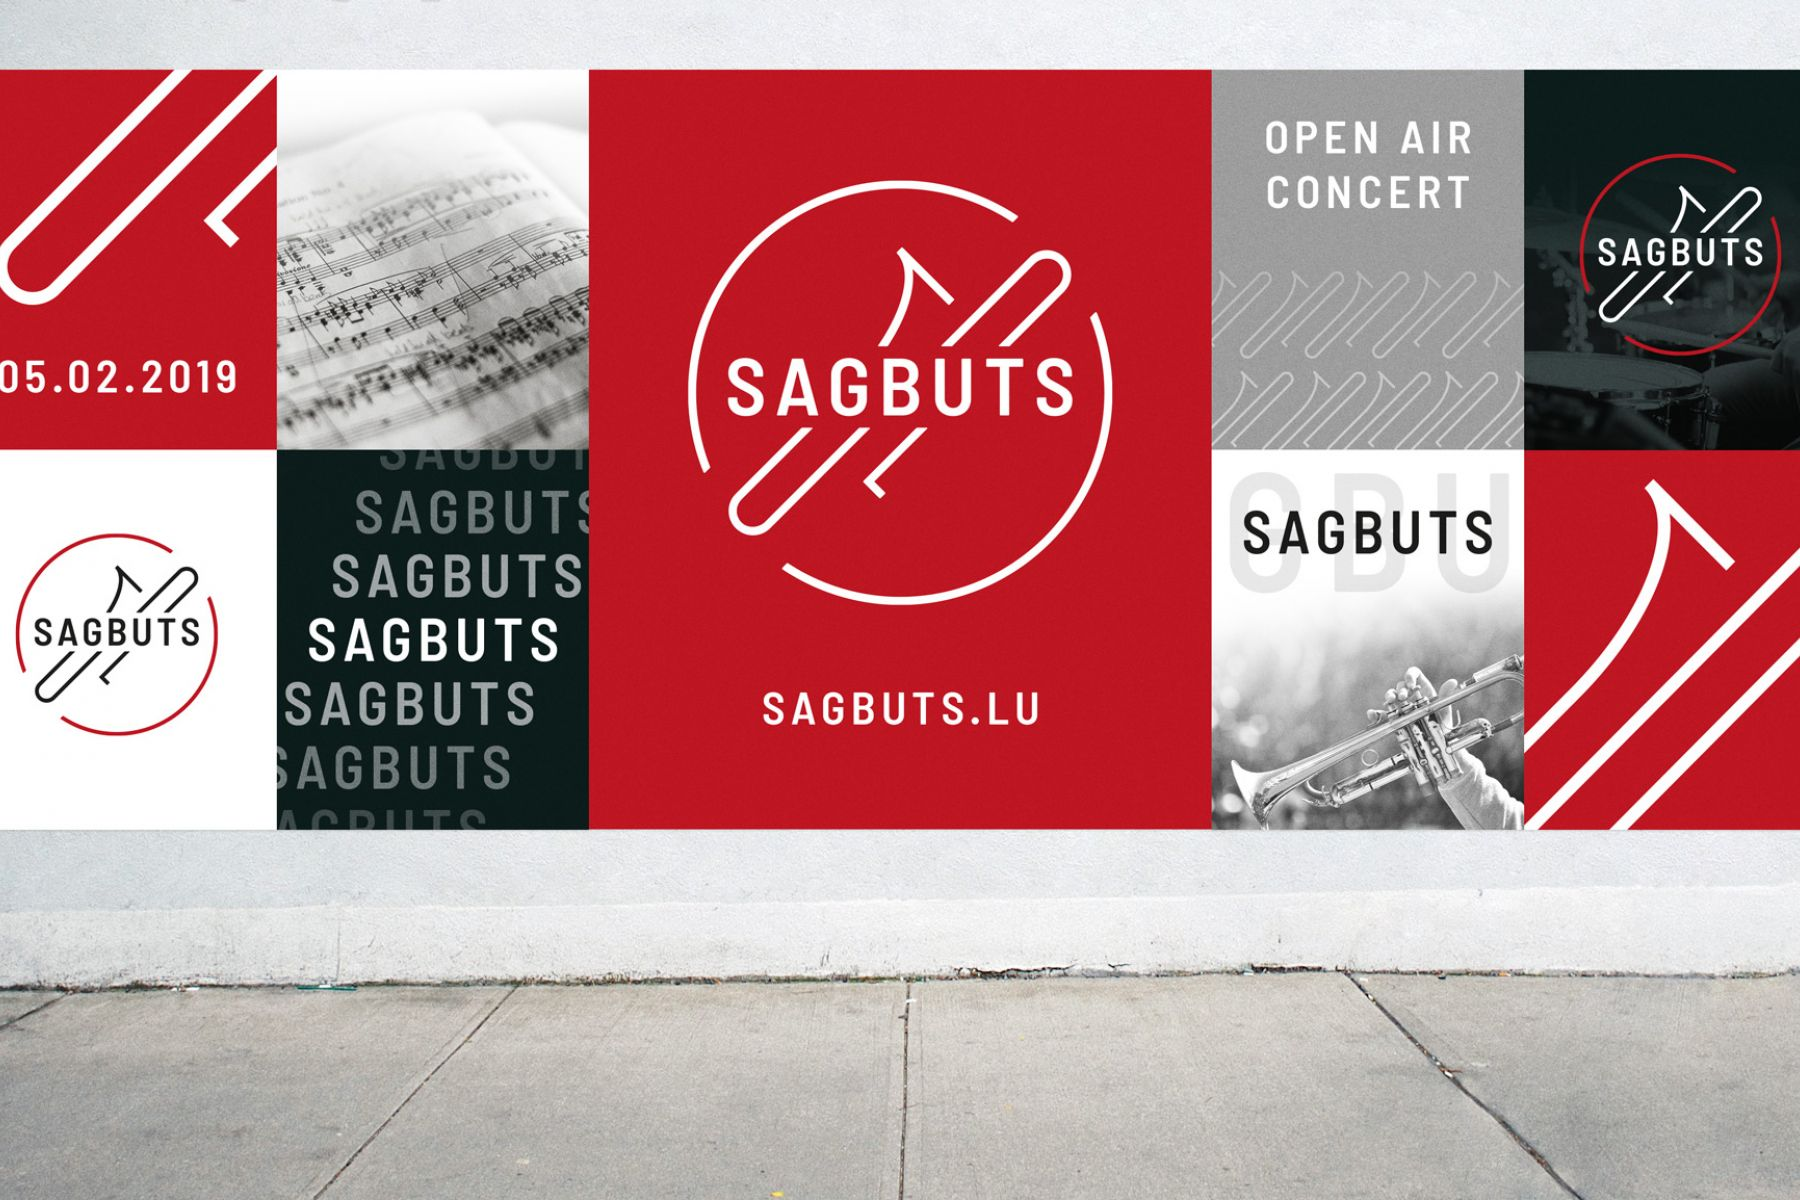 A wall with a lot of posters showing the Sagbuts logo in different ways.